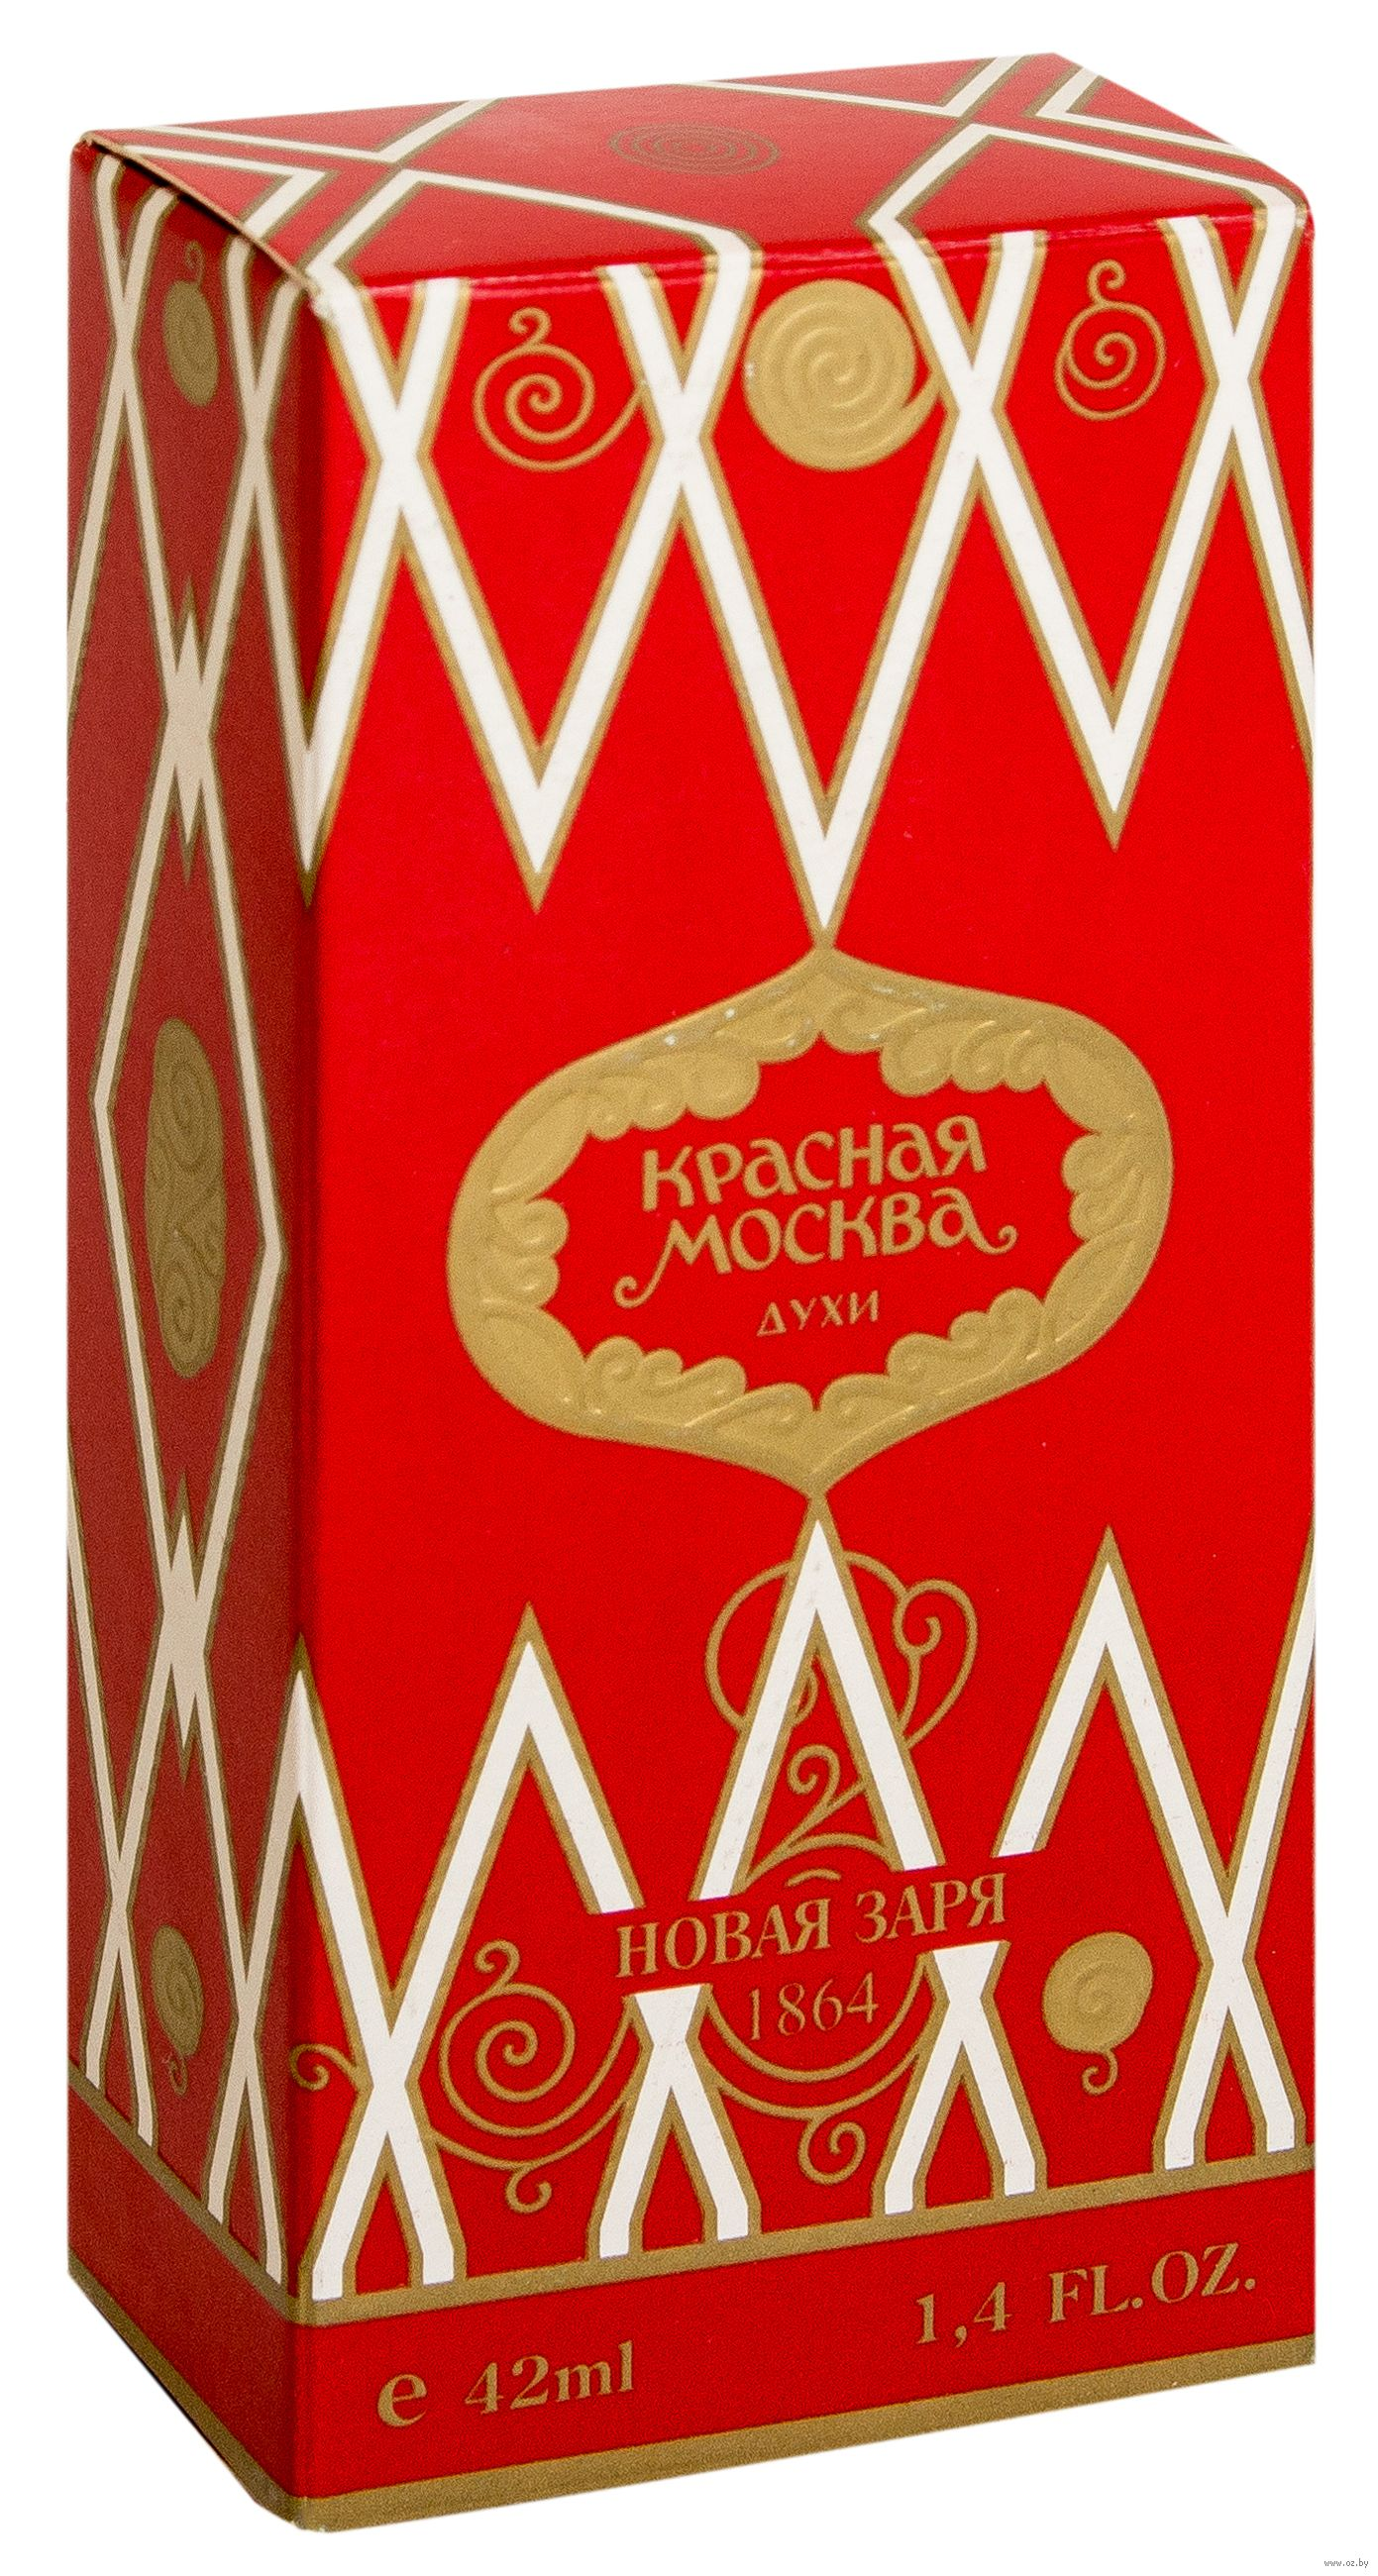 Perfume Krasnaya Moskva (Red Moscow or Moscou Rouge), 1.4 oz / 42ml